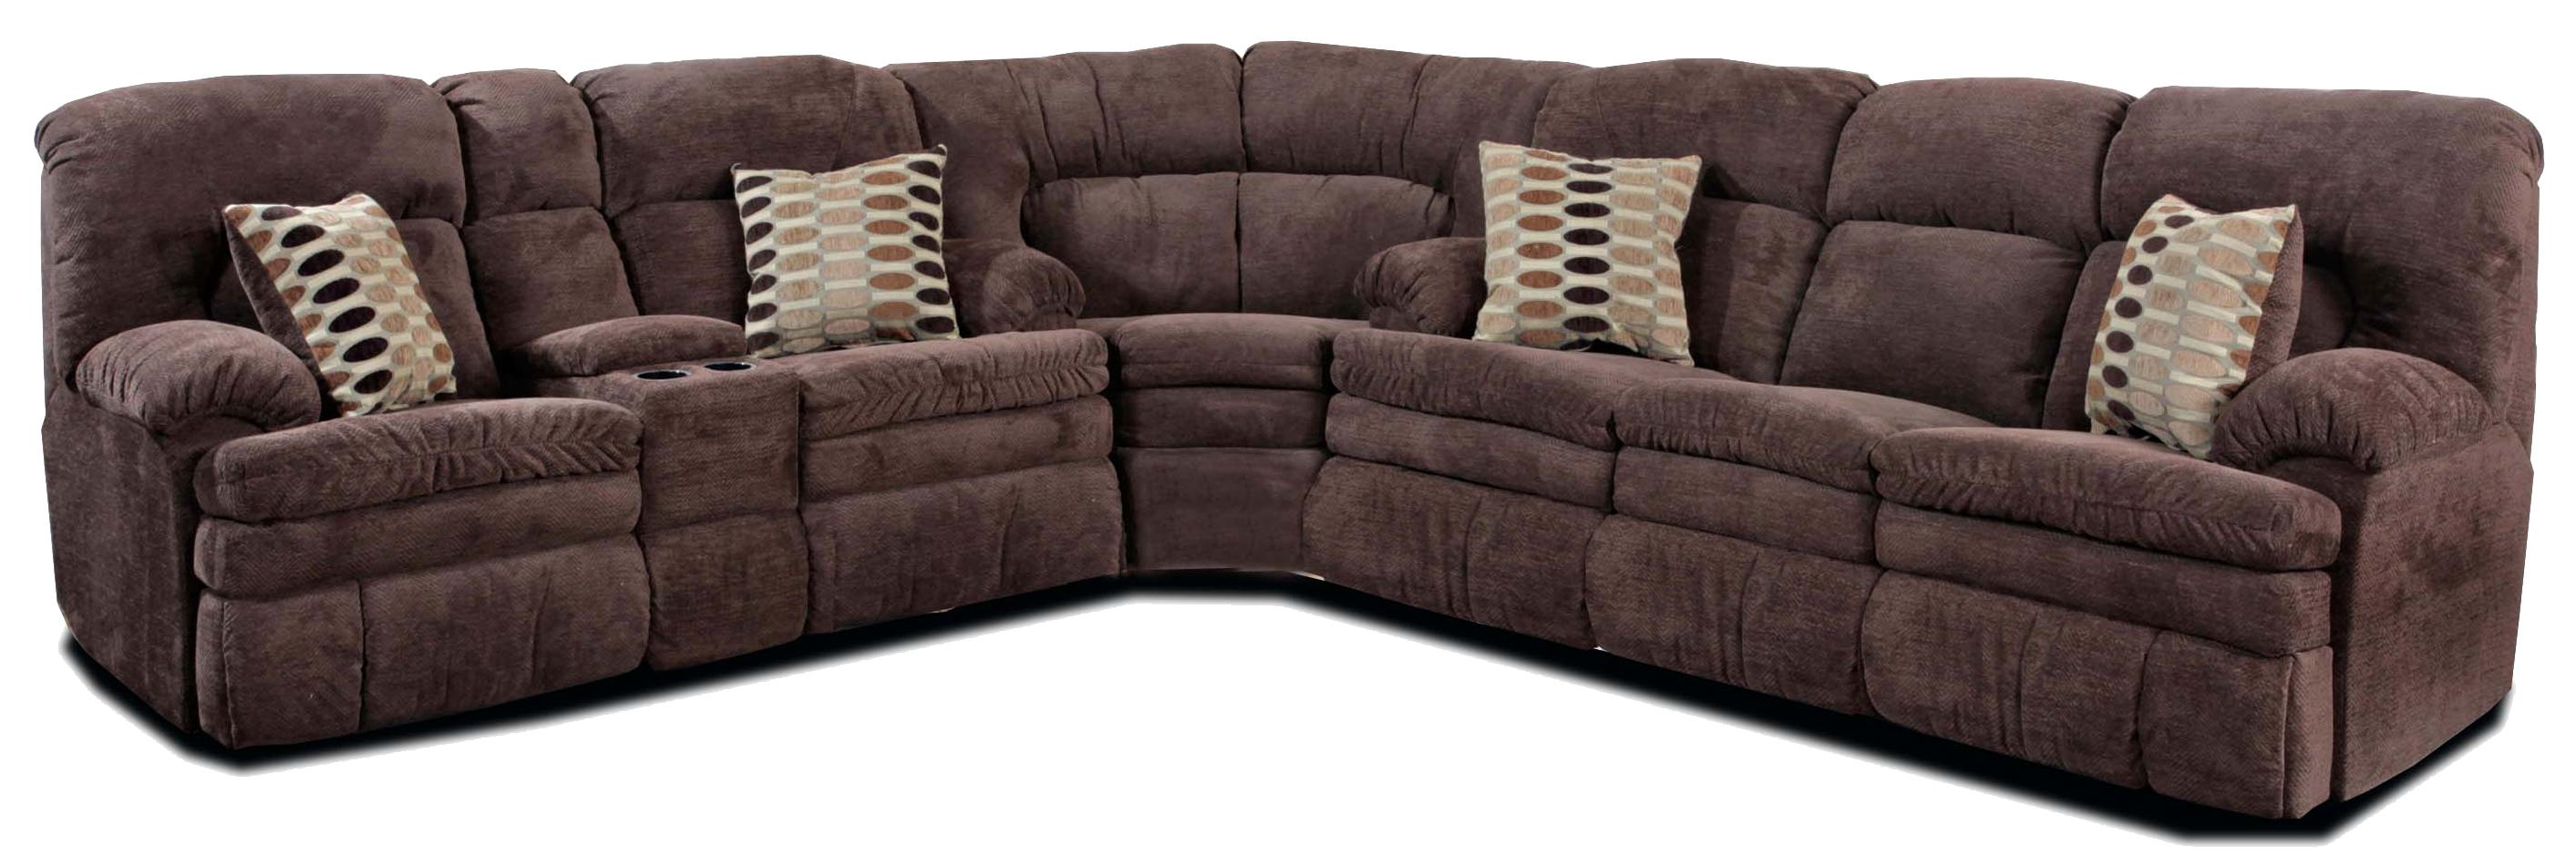 Reclining corner sectional sofa with left side cup holder for Kid friendly sectional sofa